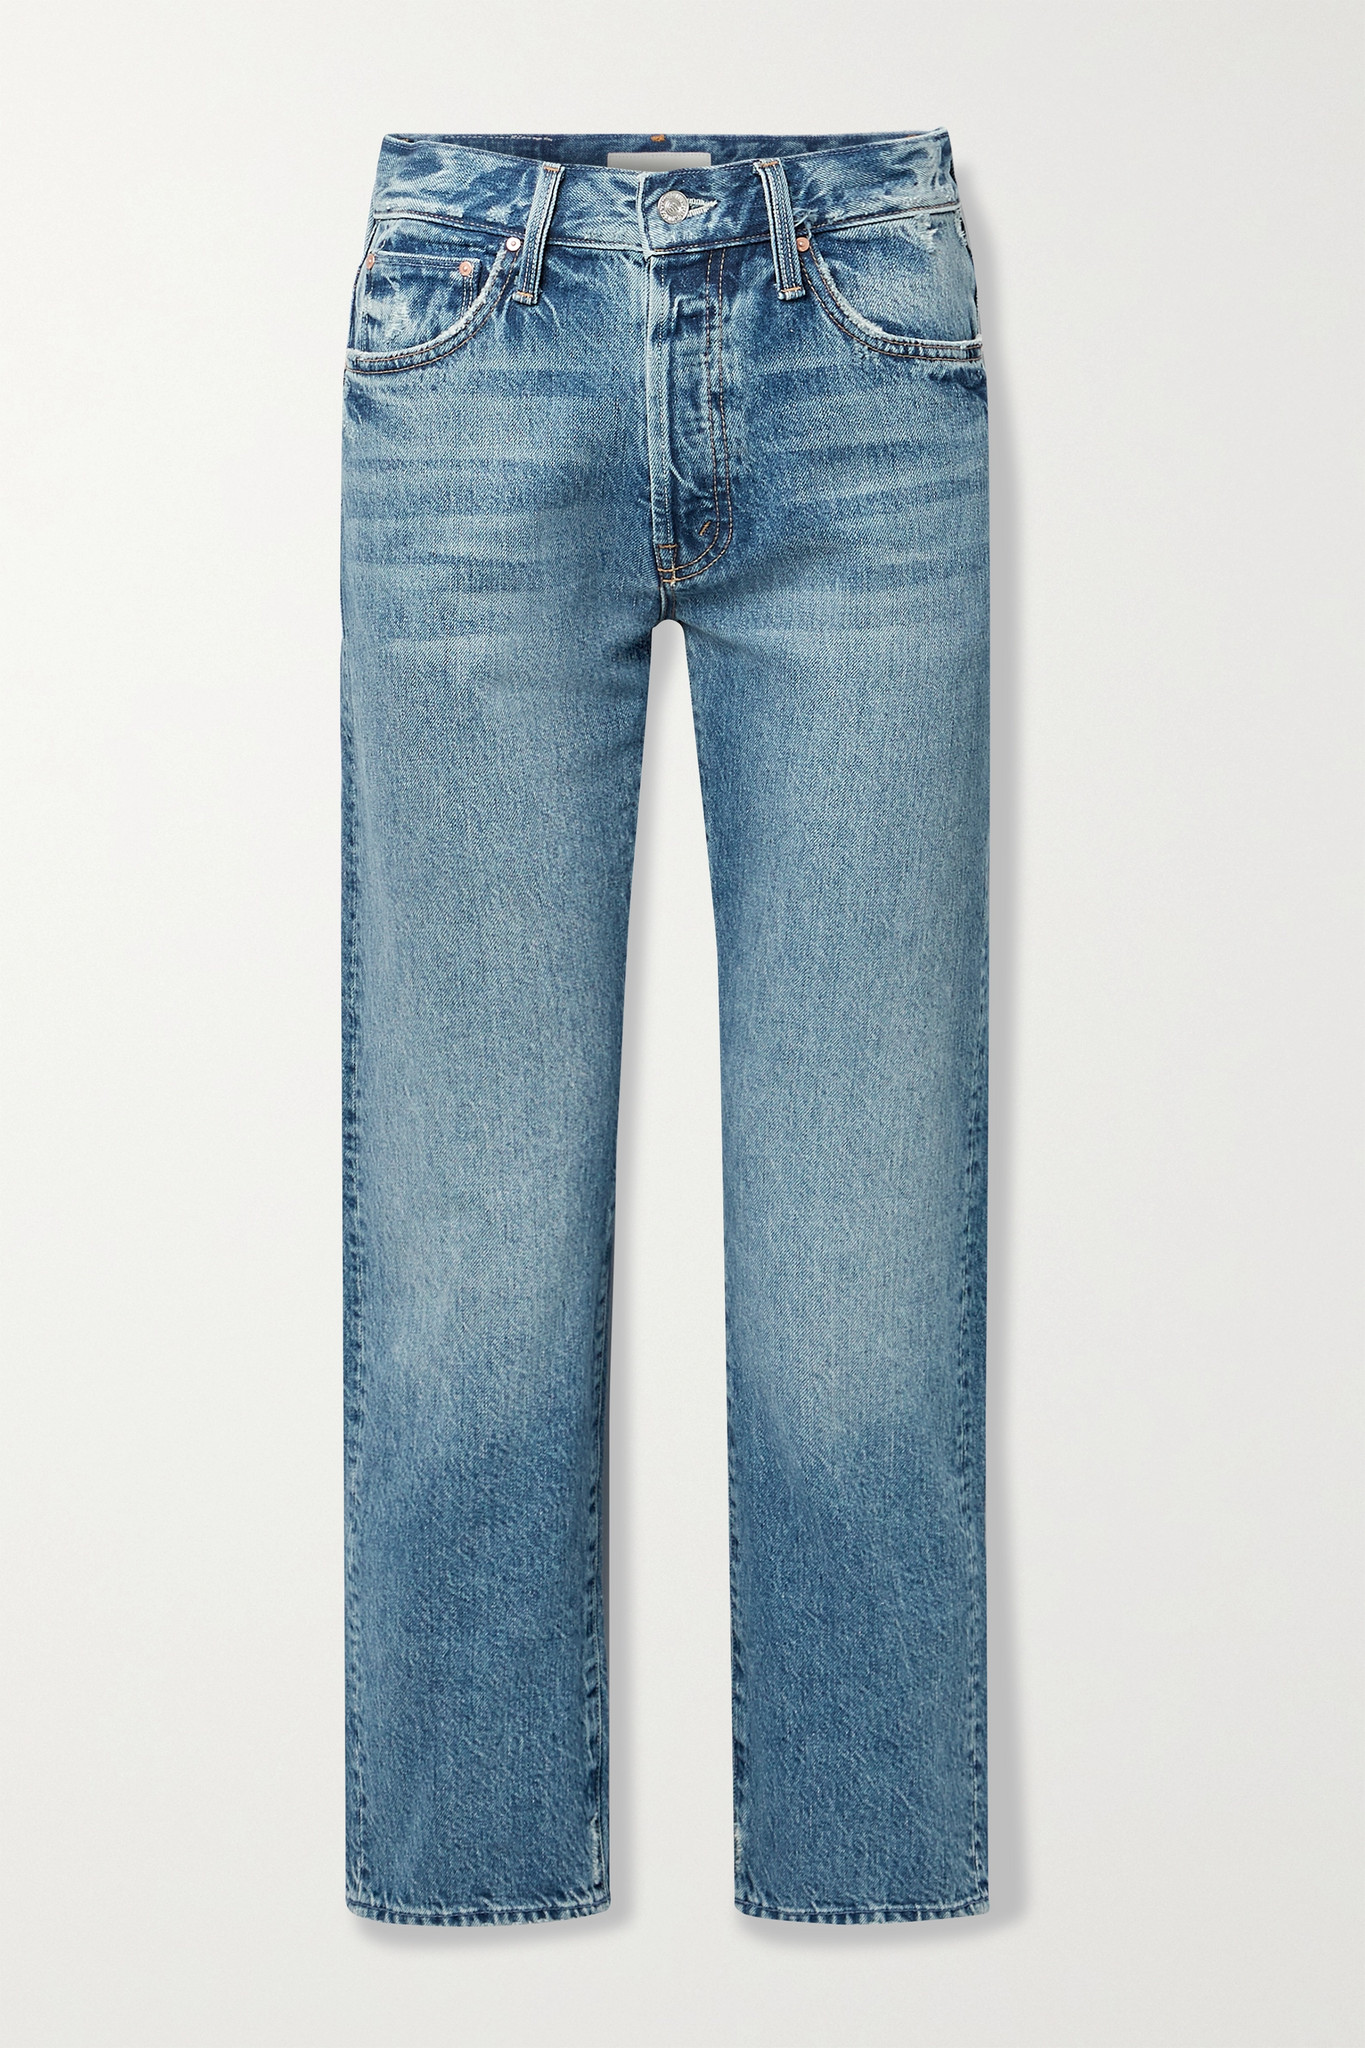 MOTHER - Hiker Hover Distressed High-rise Straight-leg Jeans - Blue - 23